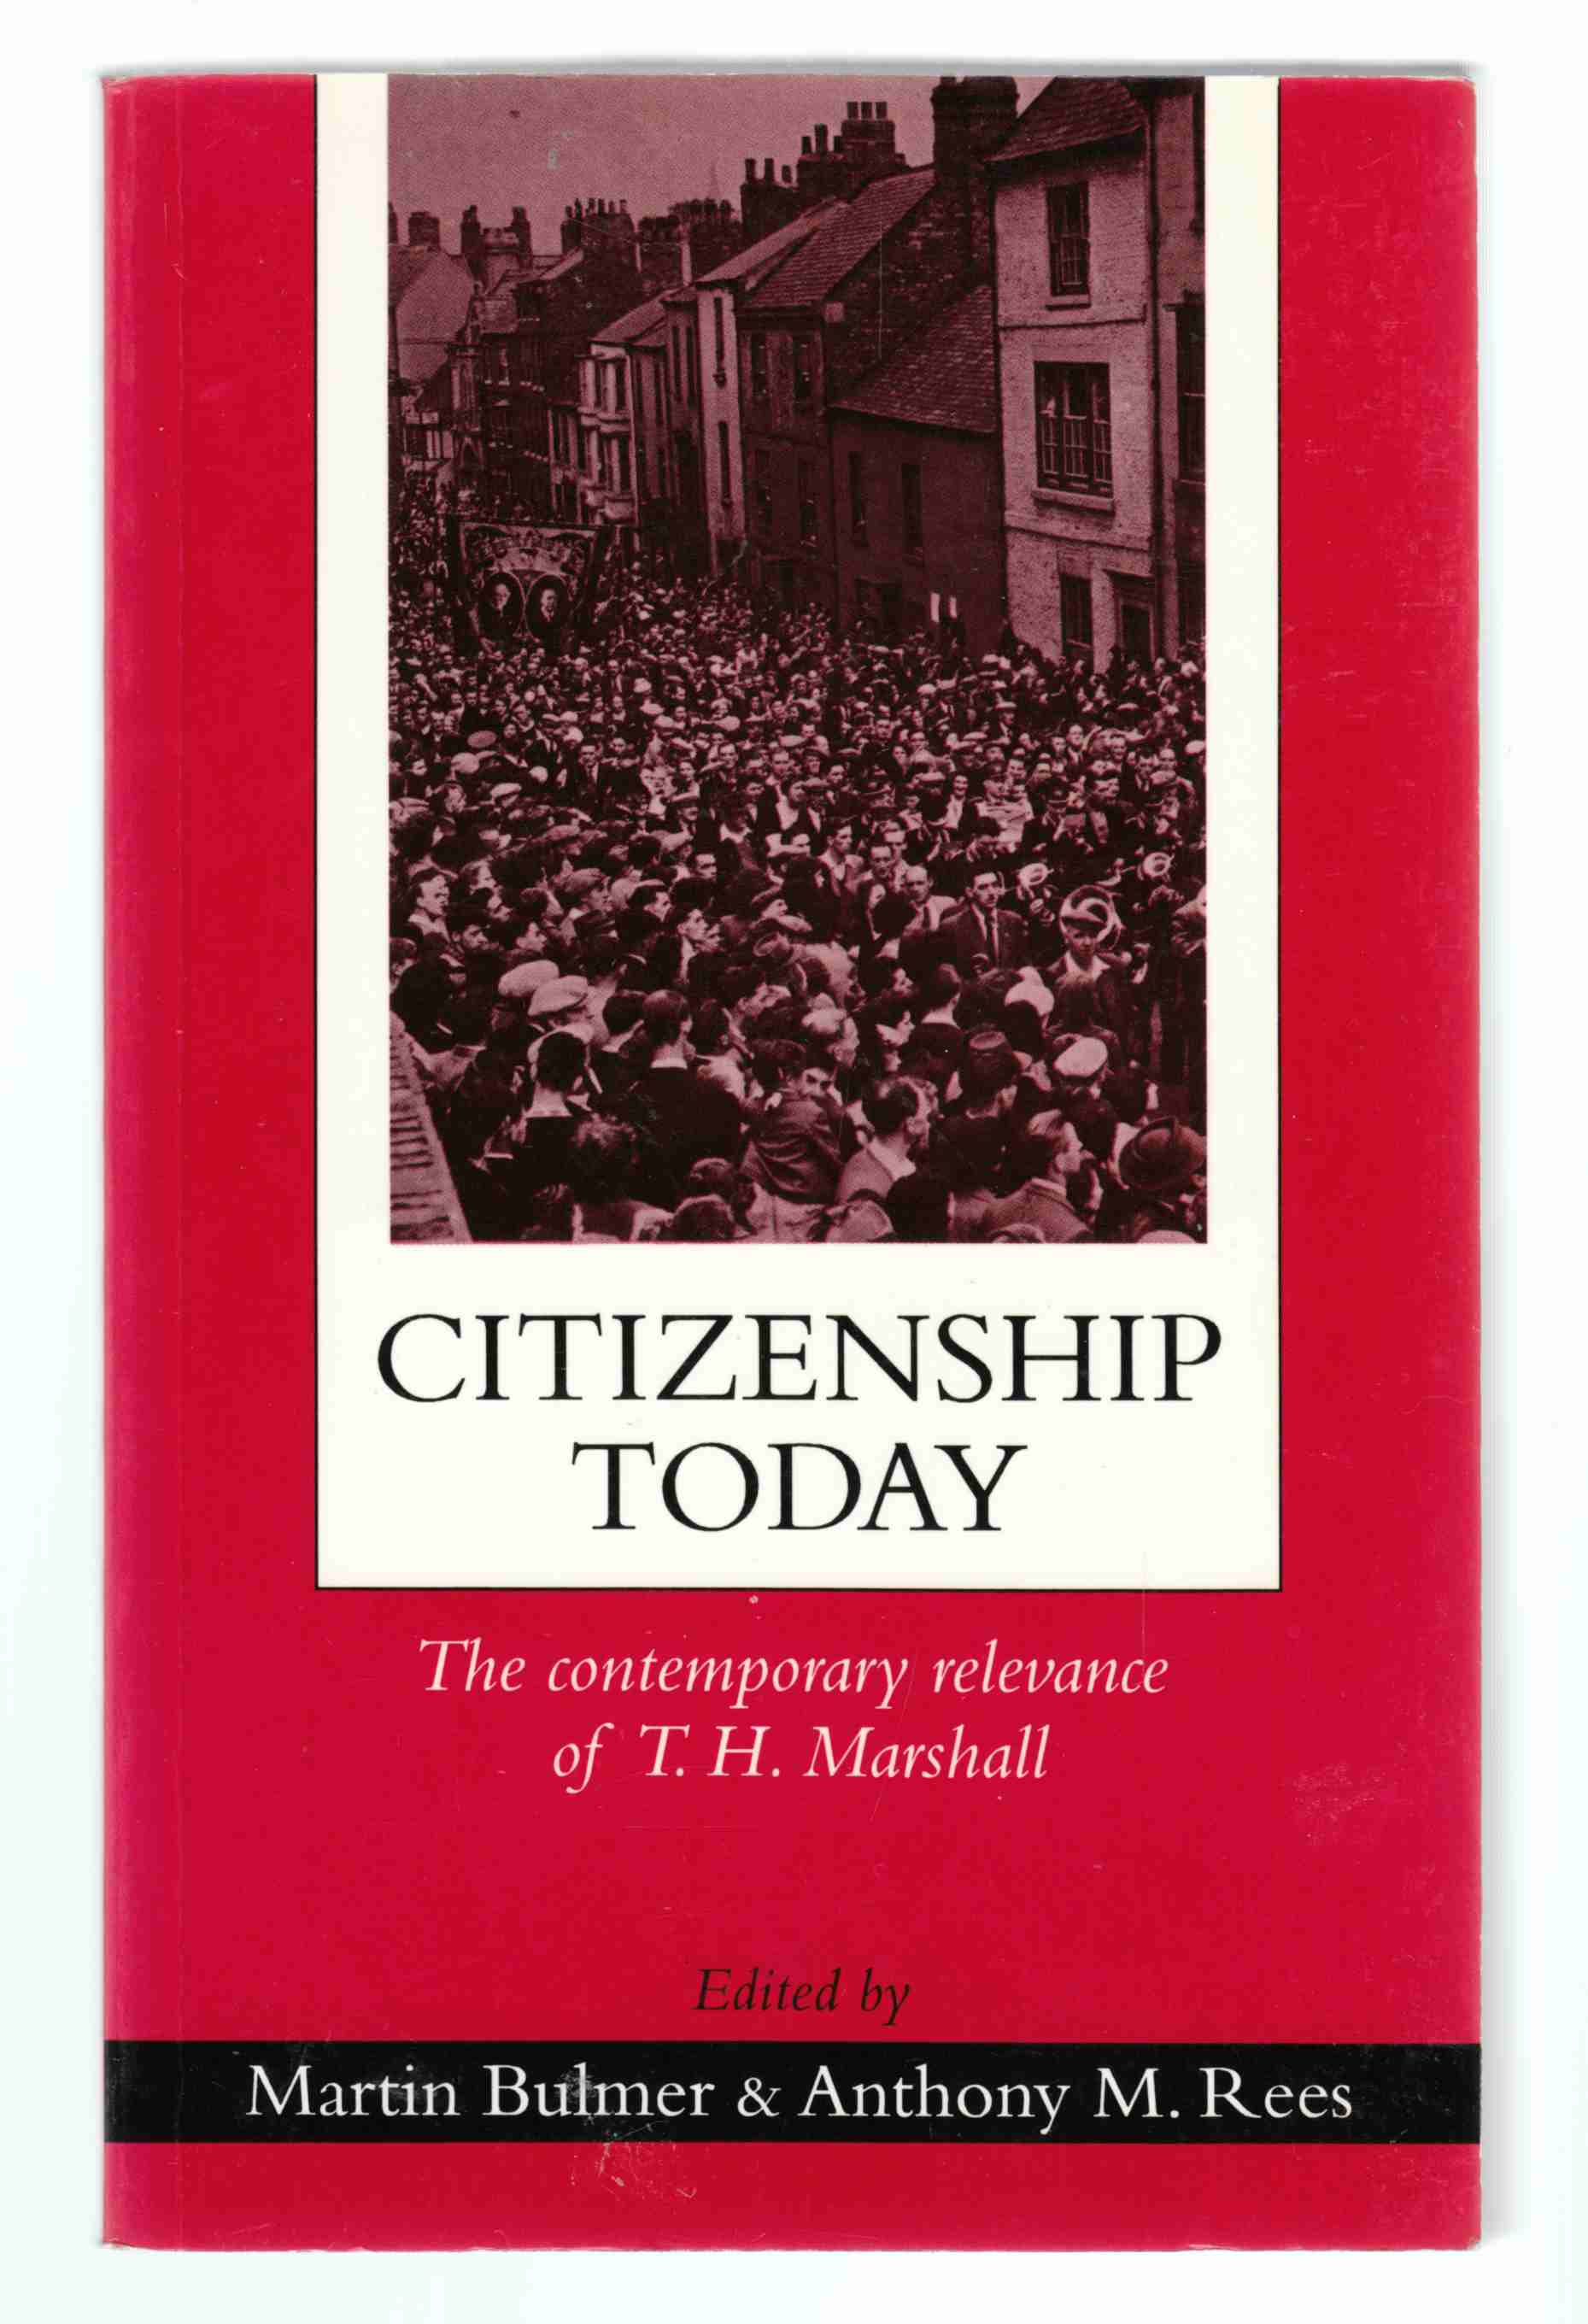 Image for Citizenship Today The Contemporary Relevance of T. H. Marshall